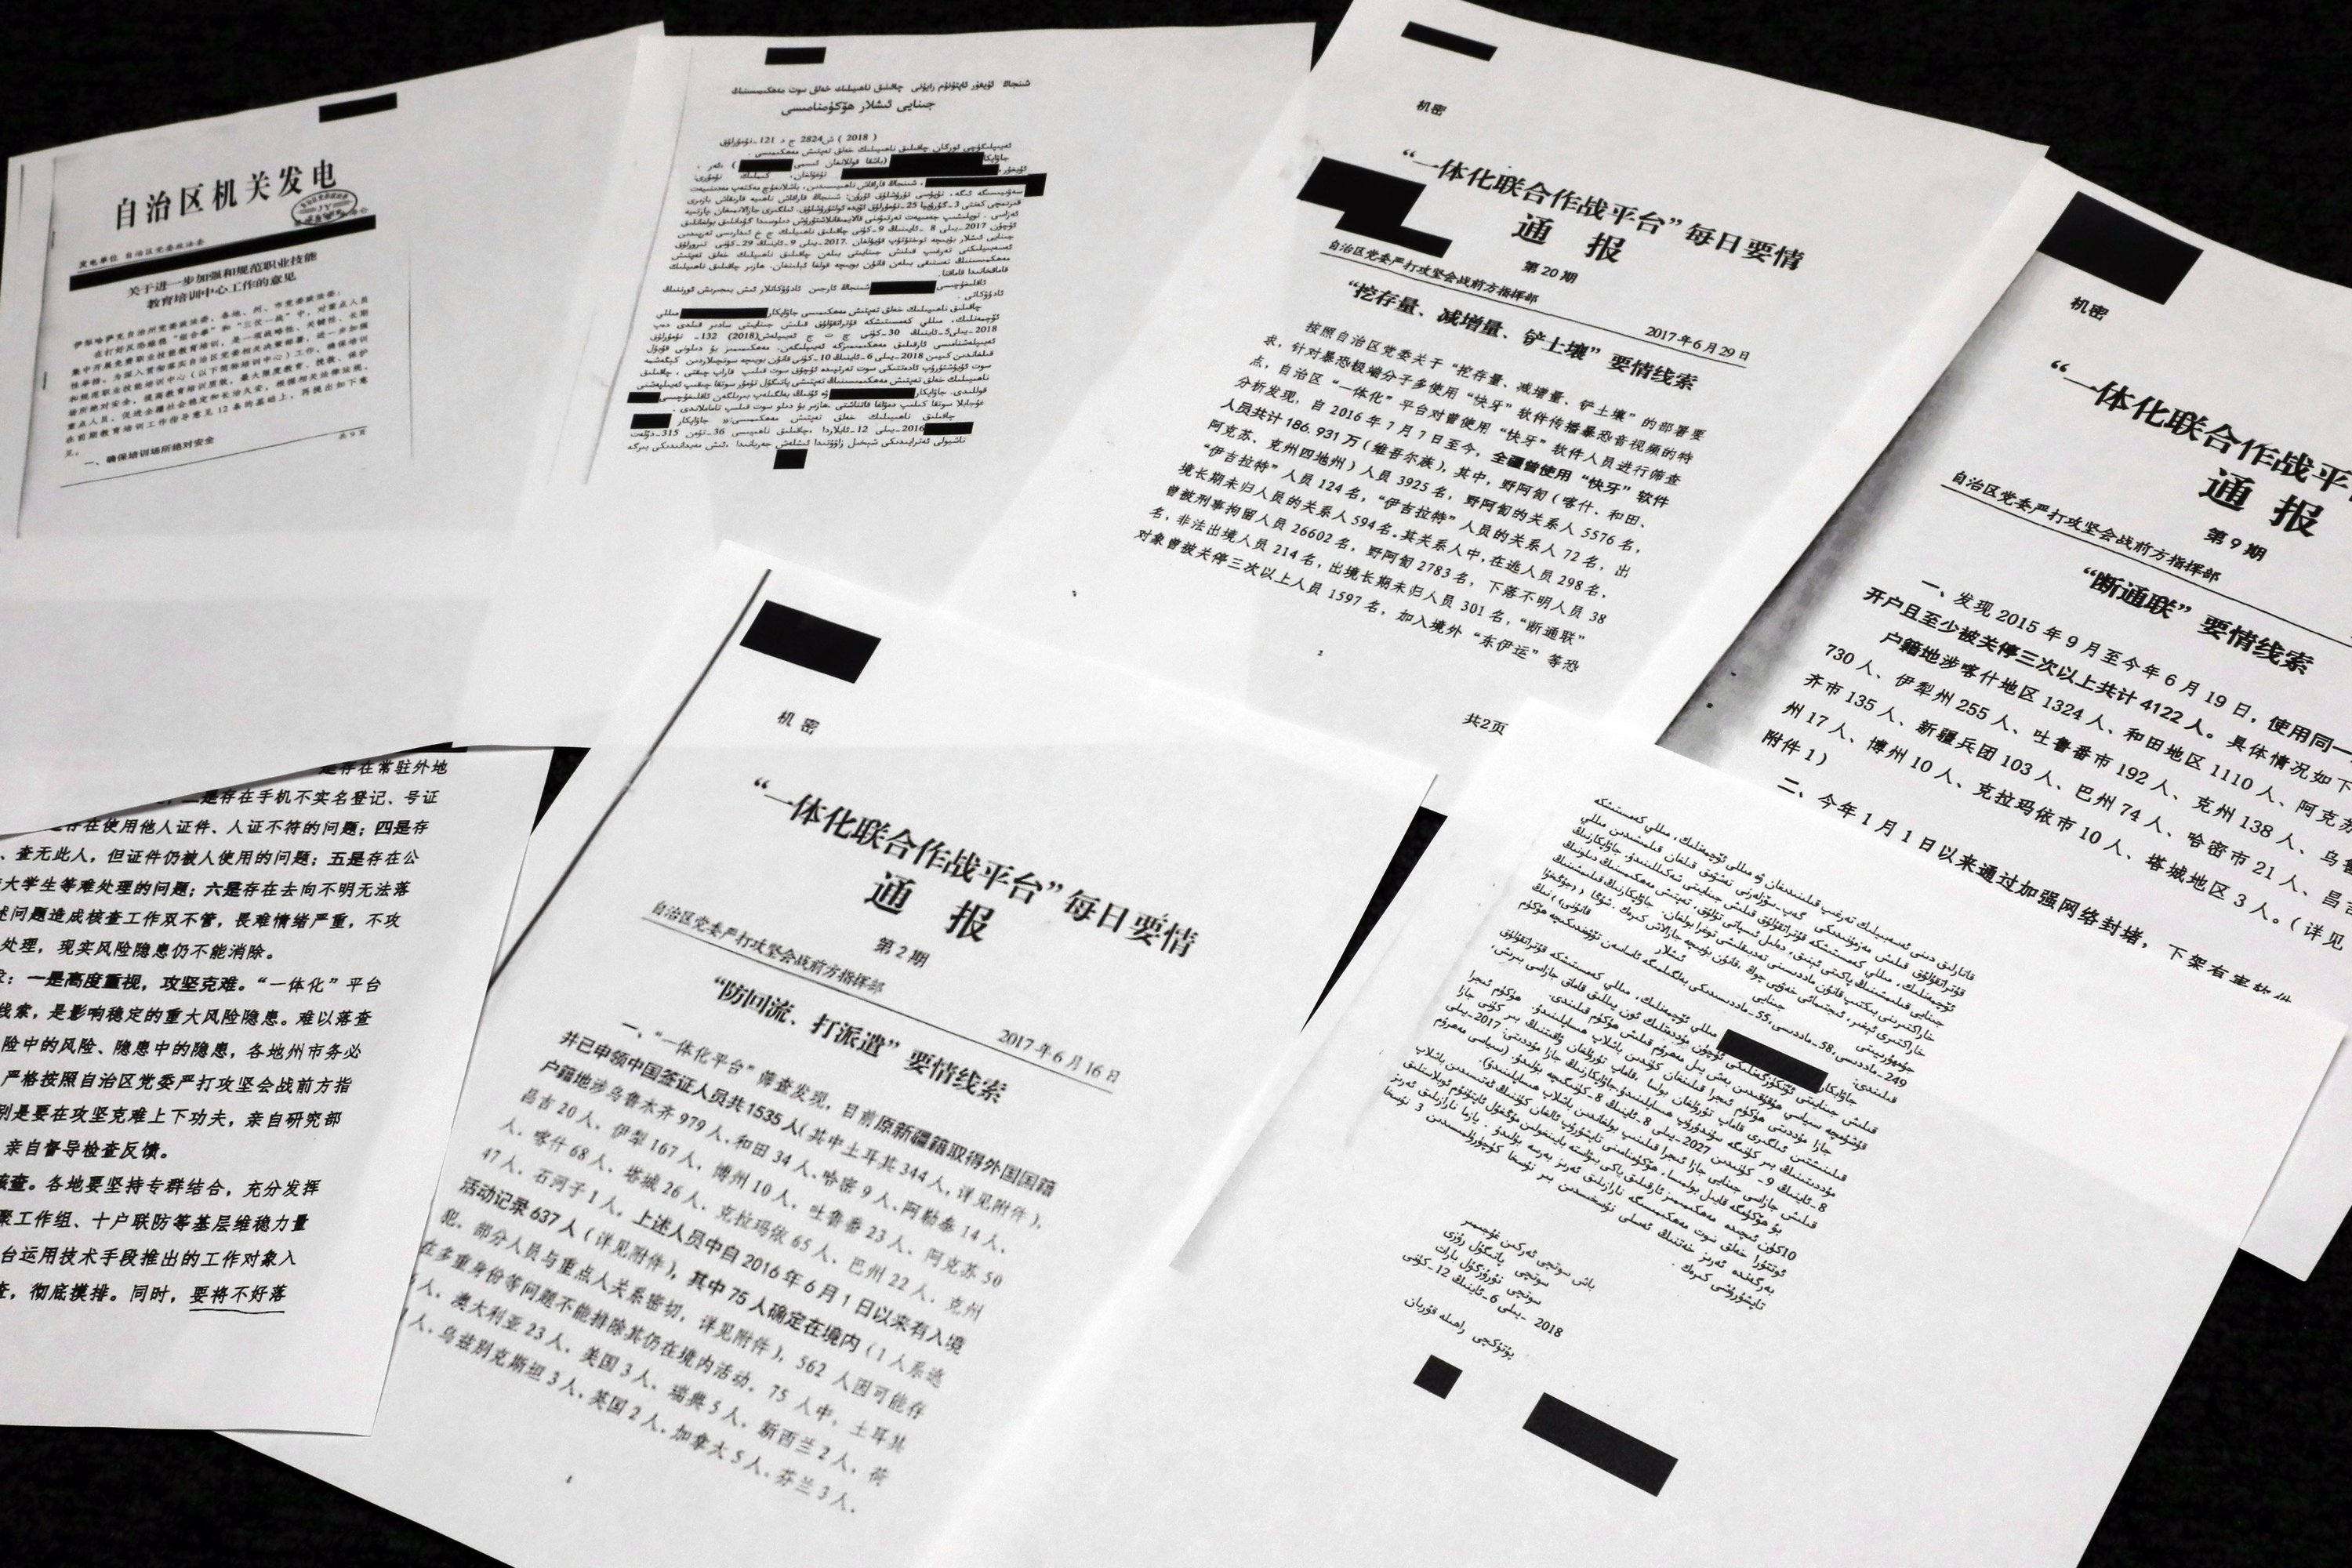 Ancient Chine Torture Porn secret documents reveal how china mass detention camps work